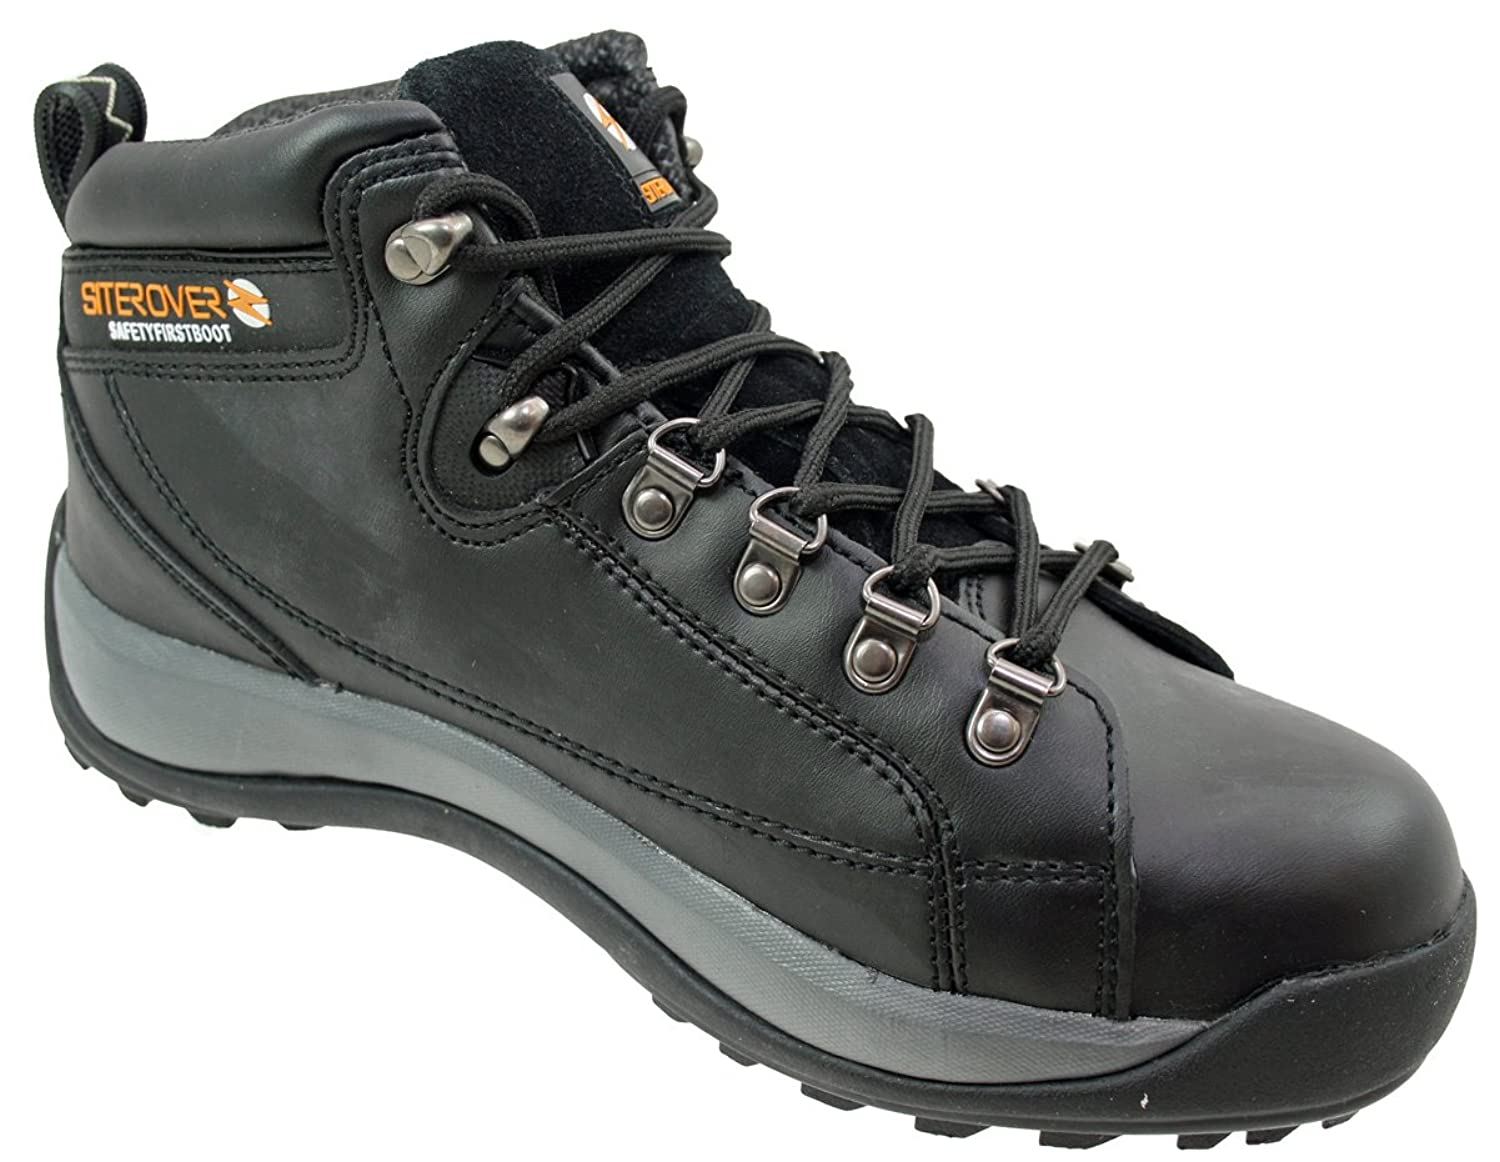 Siterover Mens Cheap Steel Toe Safety Work Boots Leather Working ...